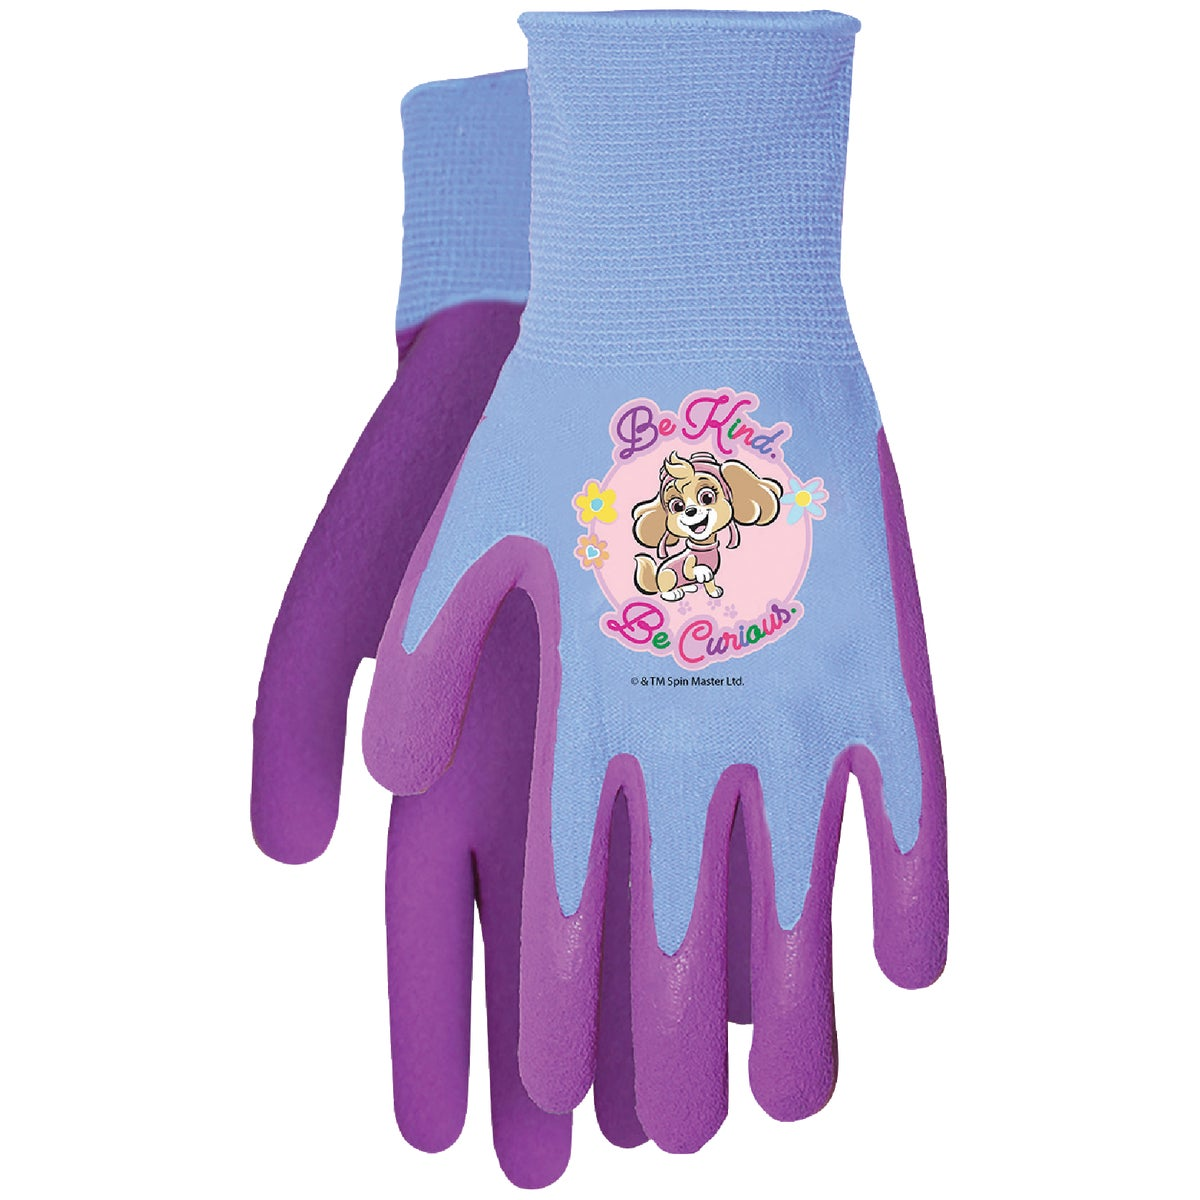 PRINCESS CANVAS GLOVE - PR101T-T-00 by Midwest Quality Glov